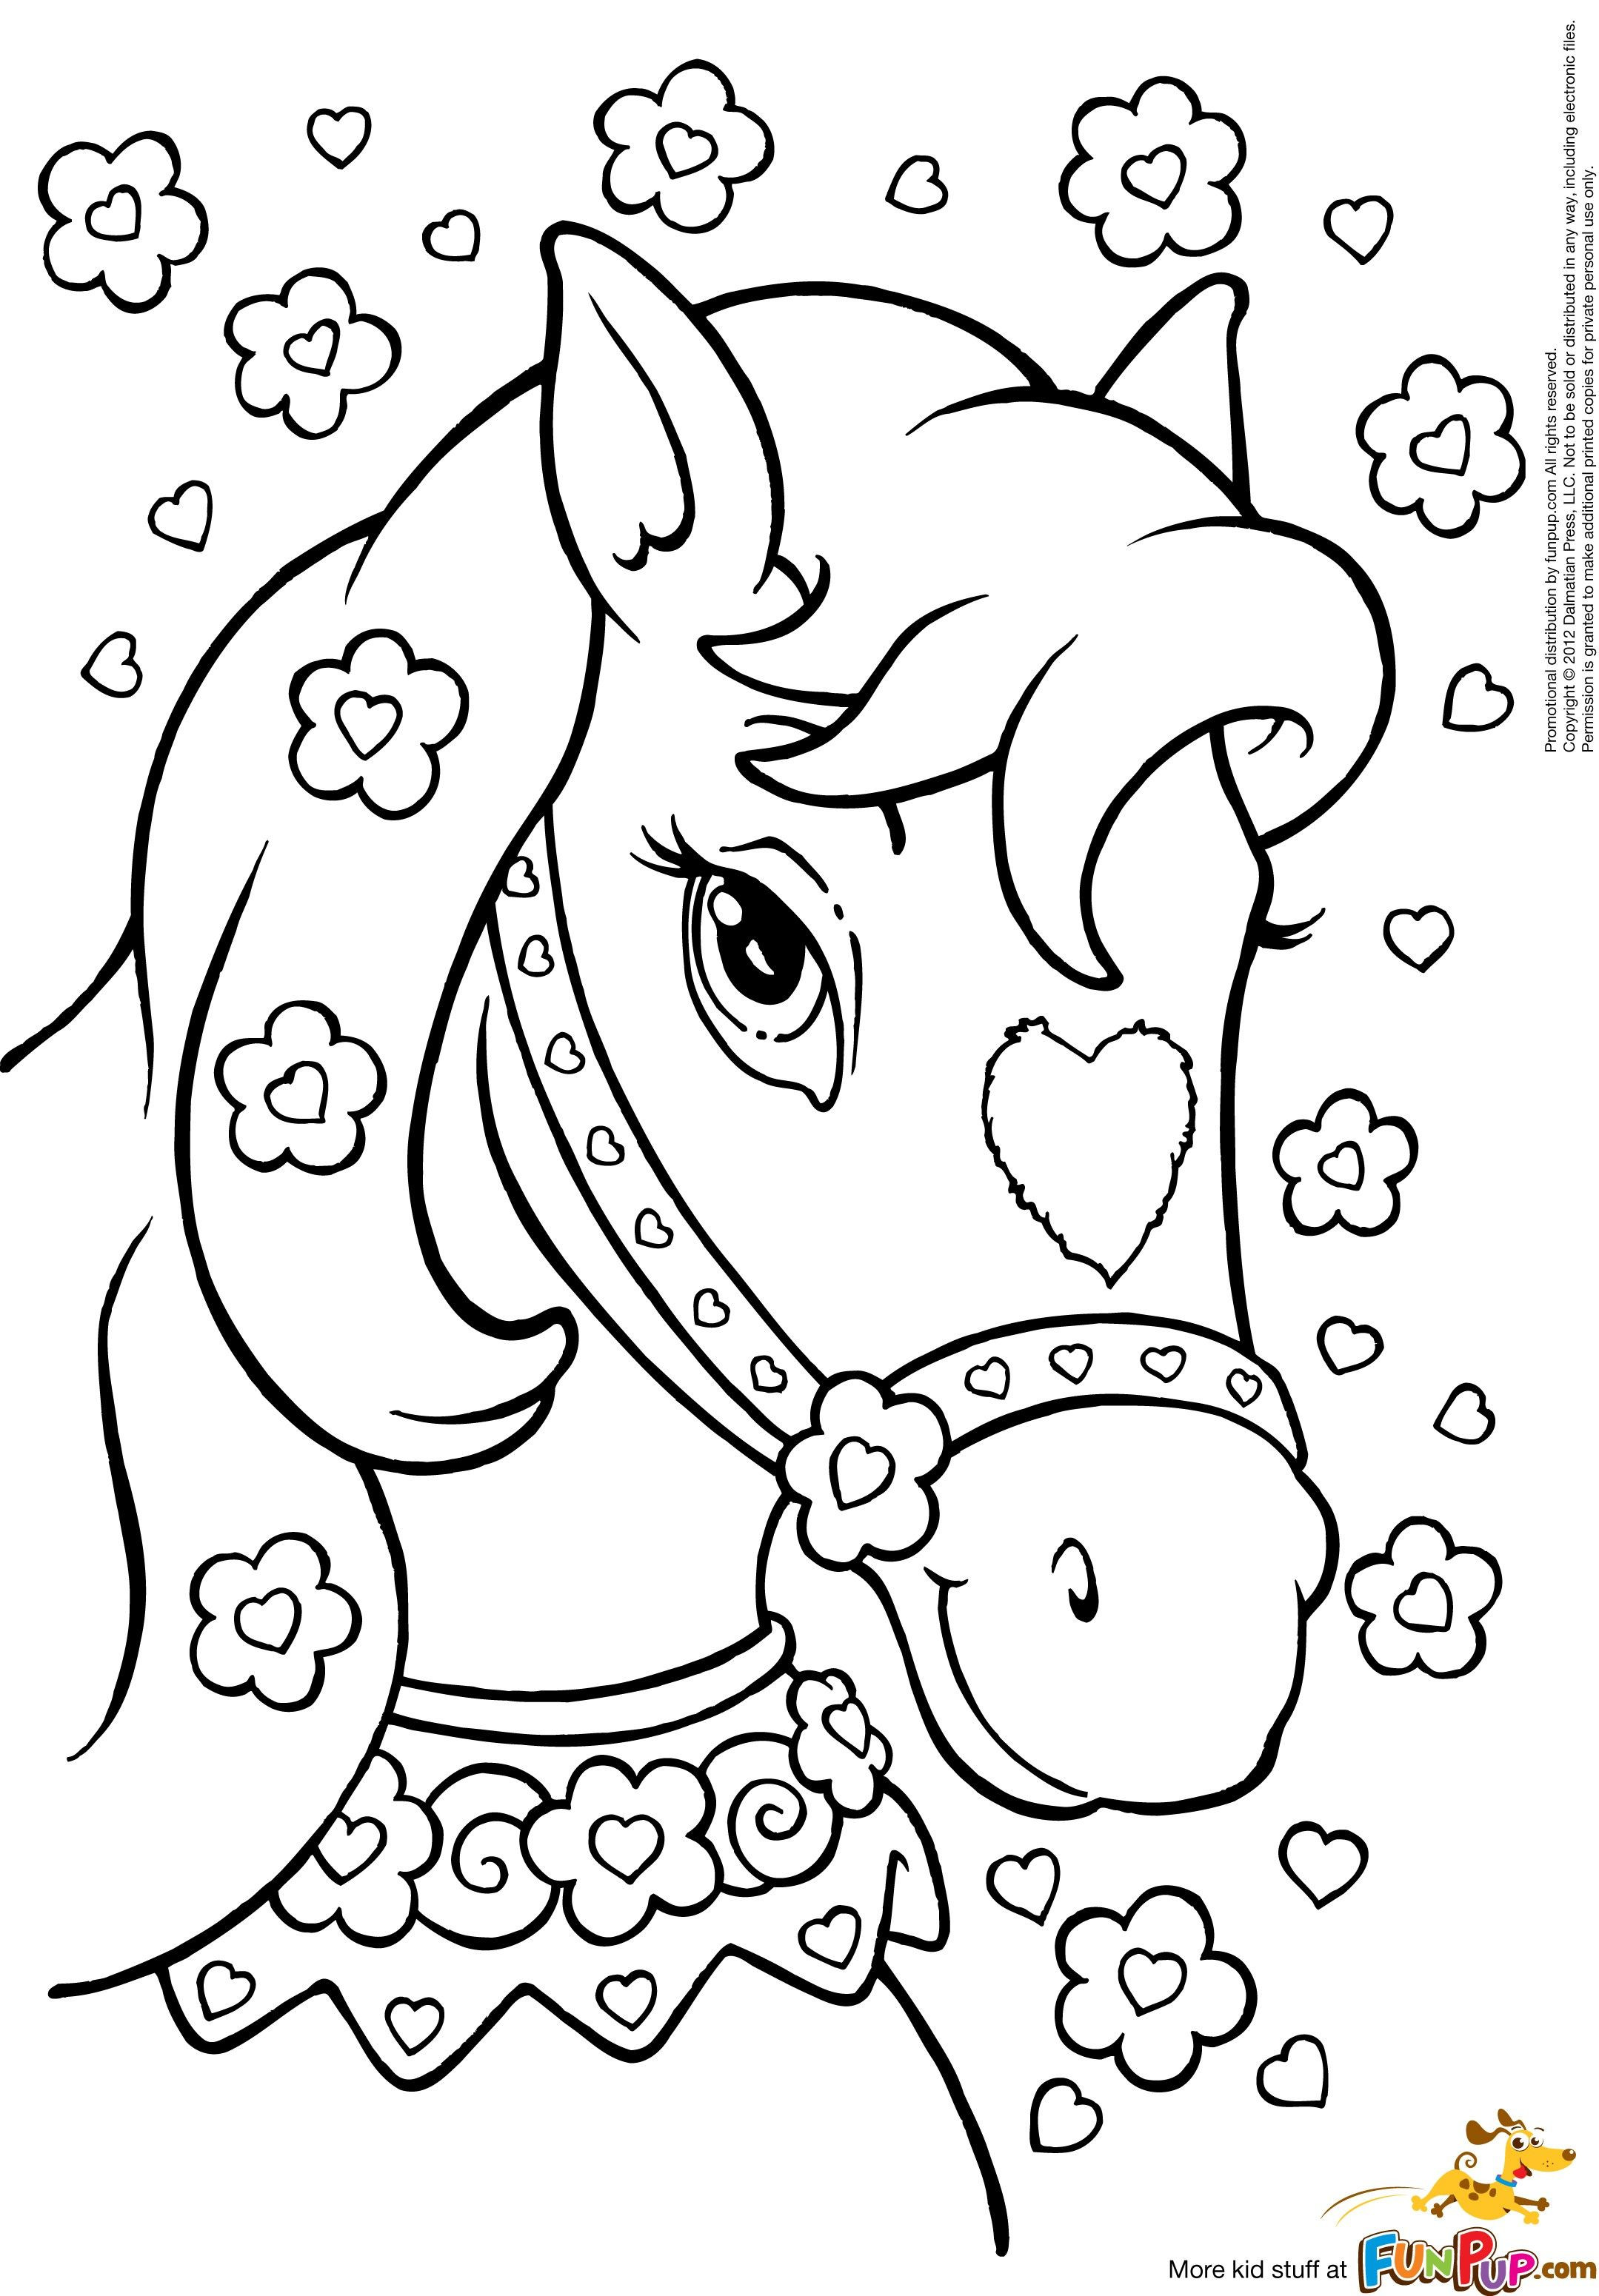 Best ideas about Coloring Pages For Girls Mouted Princess . Save or Pin printable princess coloring pages Now.